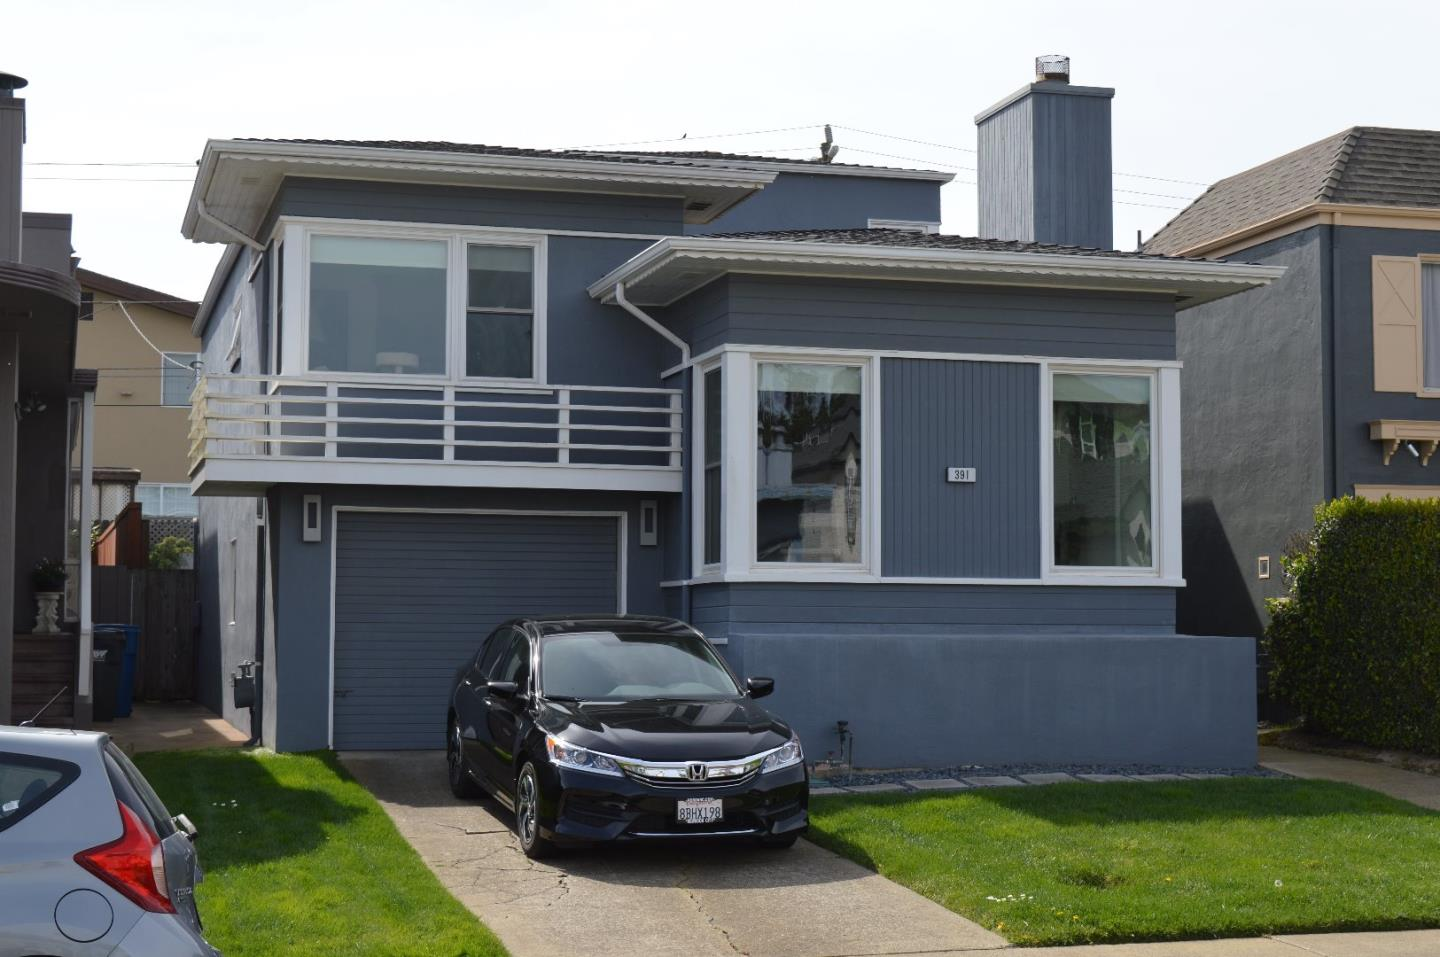 391 Glenwood Avenue Daly City, CA 94015 - MLS #: ML81700062